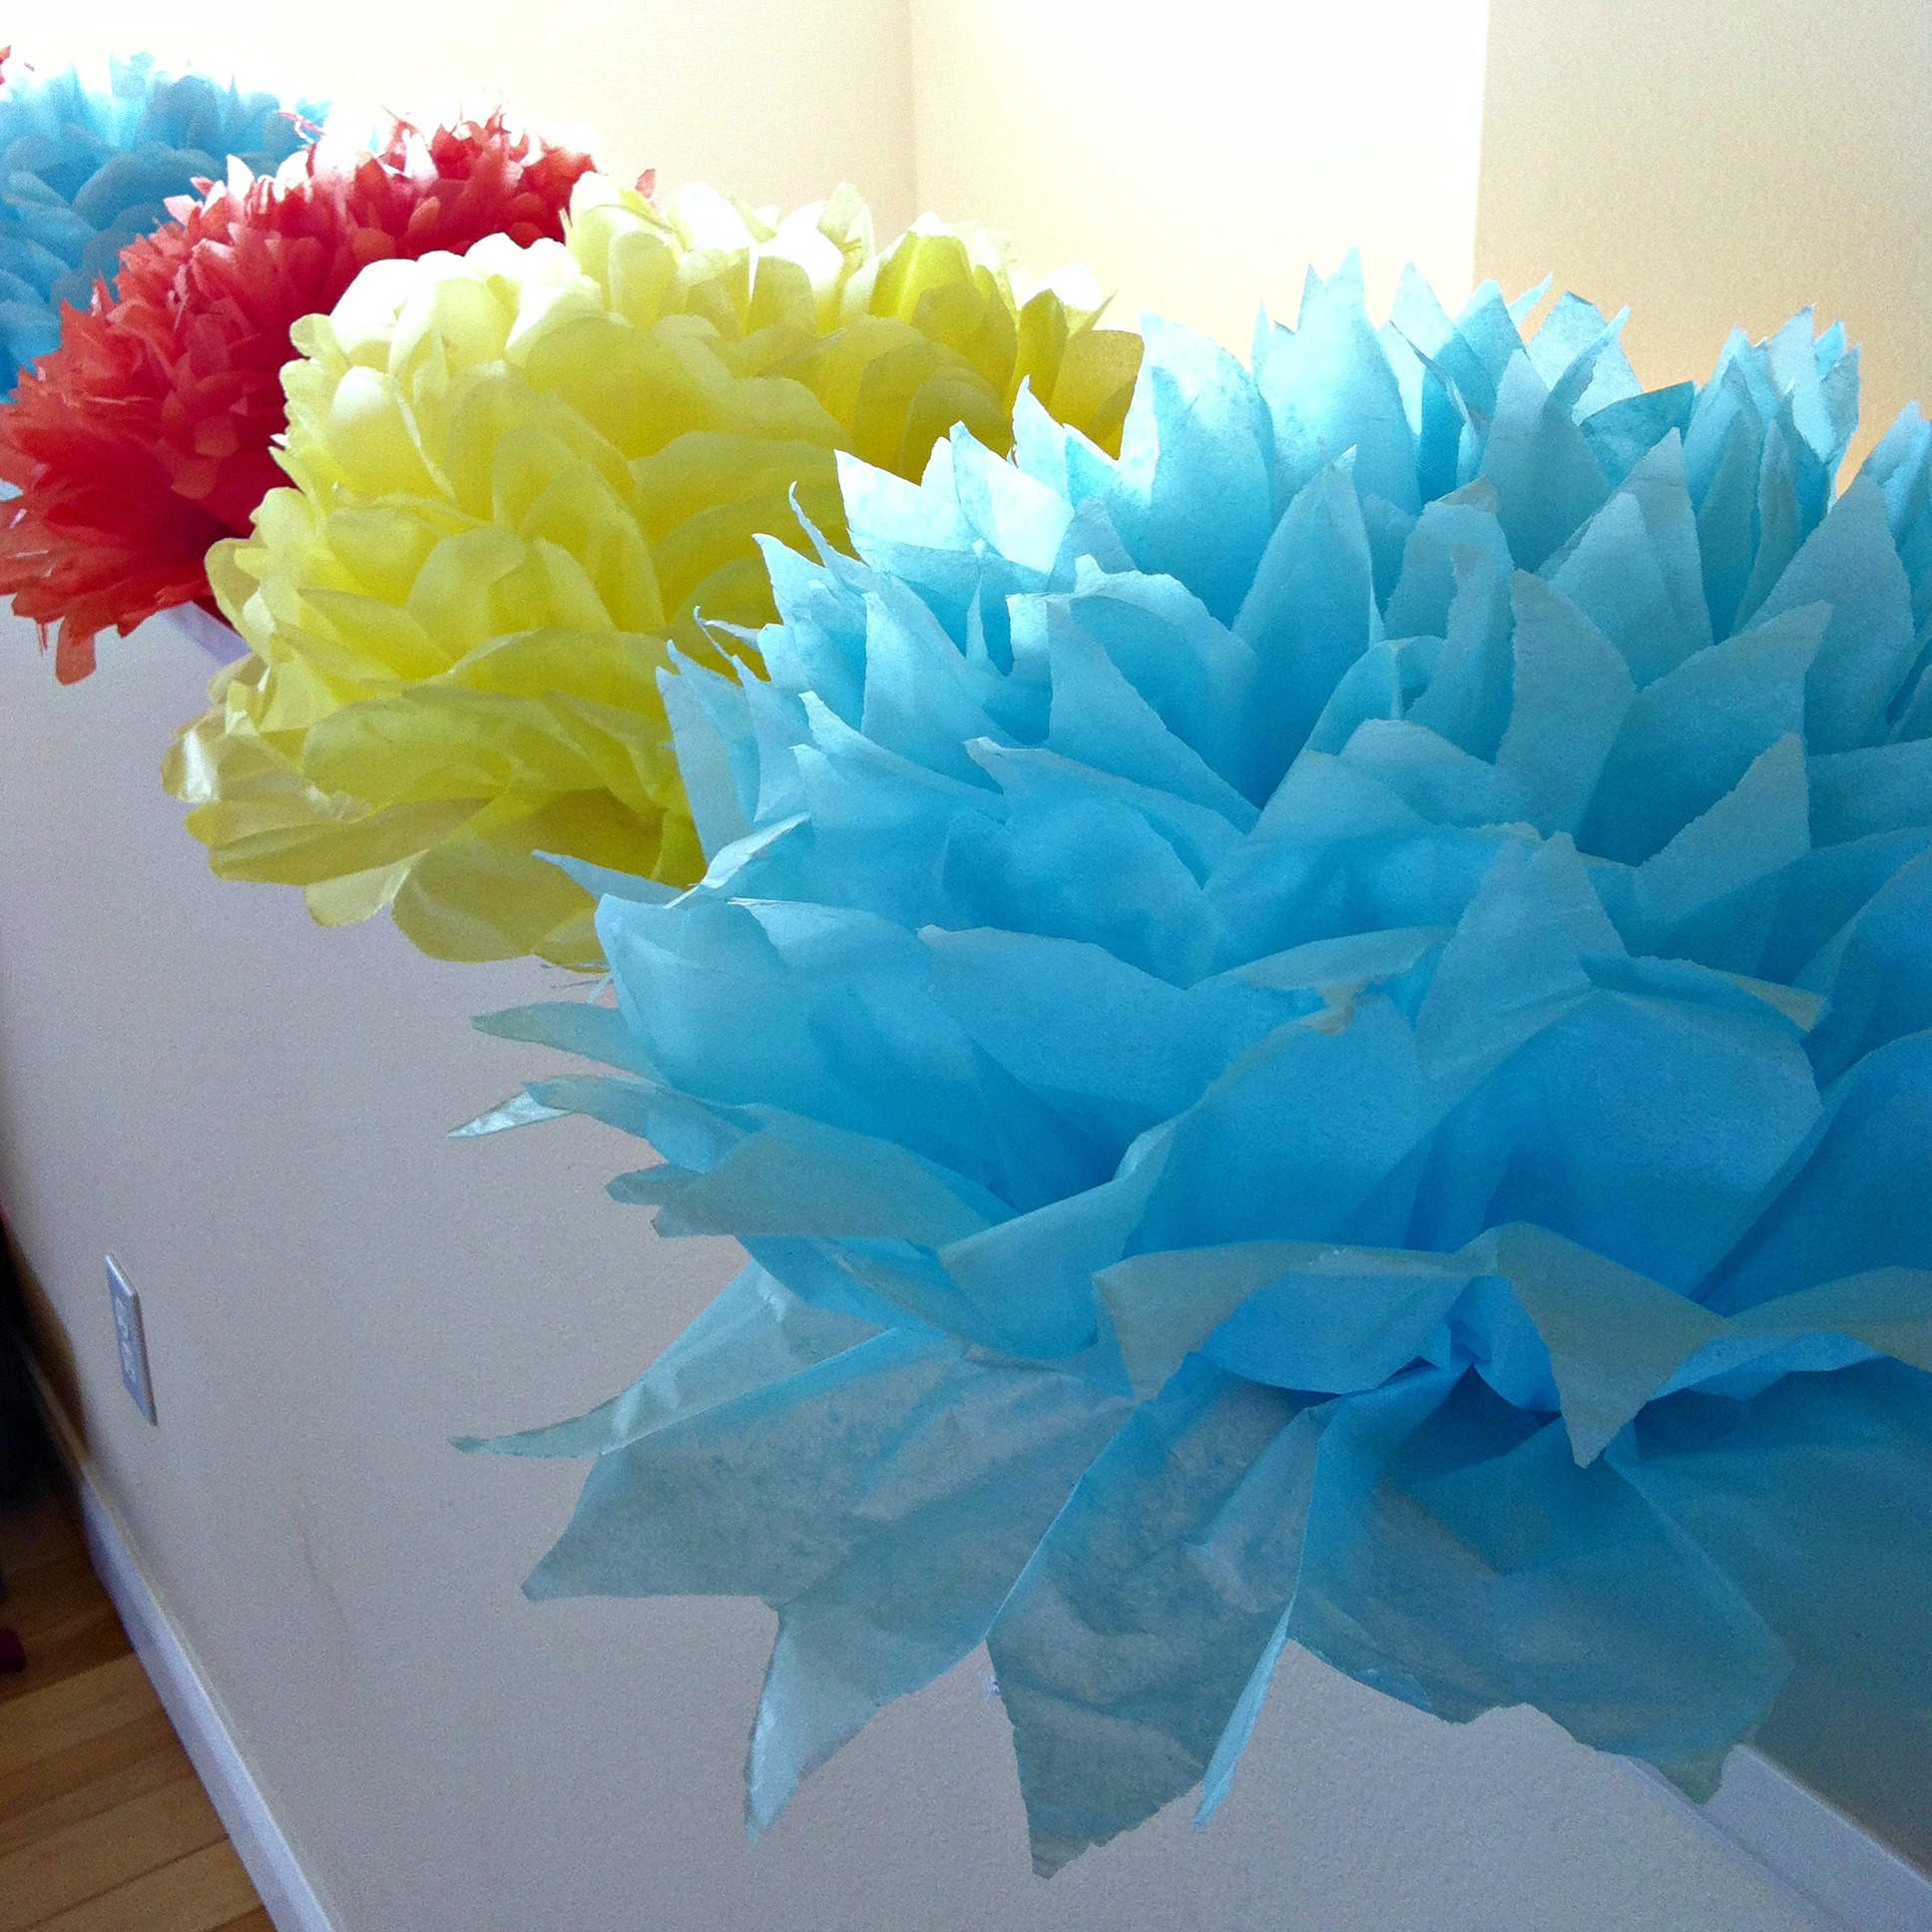 Tutorial how to make diy giant tissue paper flowers sew creative diy giant handmade tissue paper flowers tutorial 2 for 100 make beautiful birthday party decorations final solutioingenieria Images